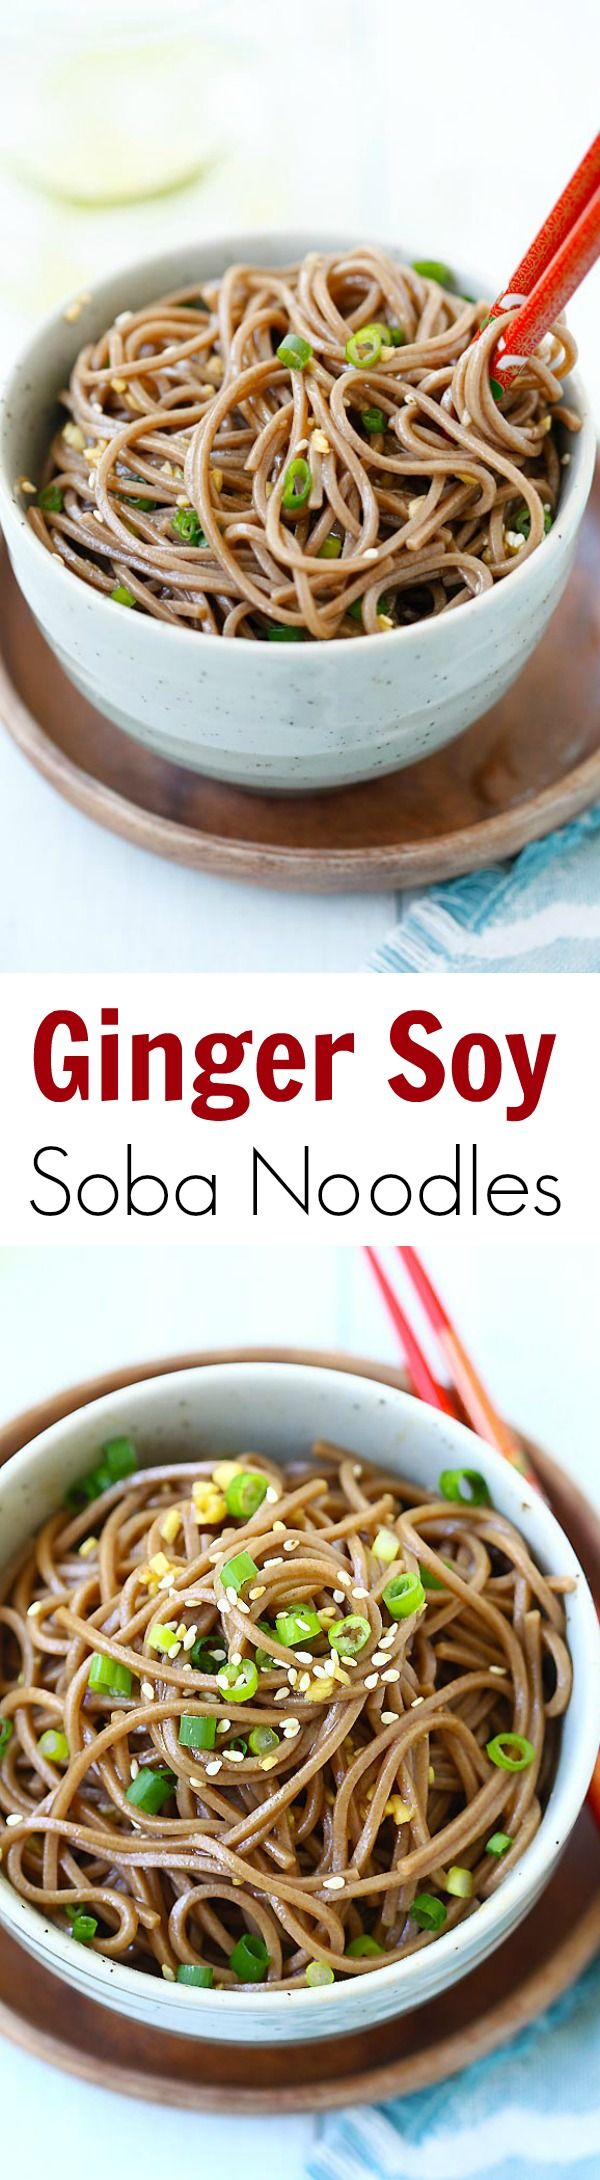 Ginger Soy Soba – the easiest and healthiest noodles made with ginger, soy sauce, honey and Japanese soba noodles. 15 minutes to make! | rasamalaysia.com